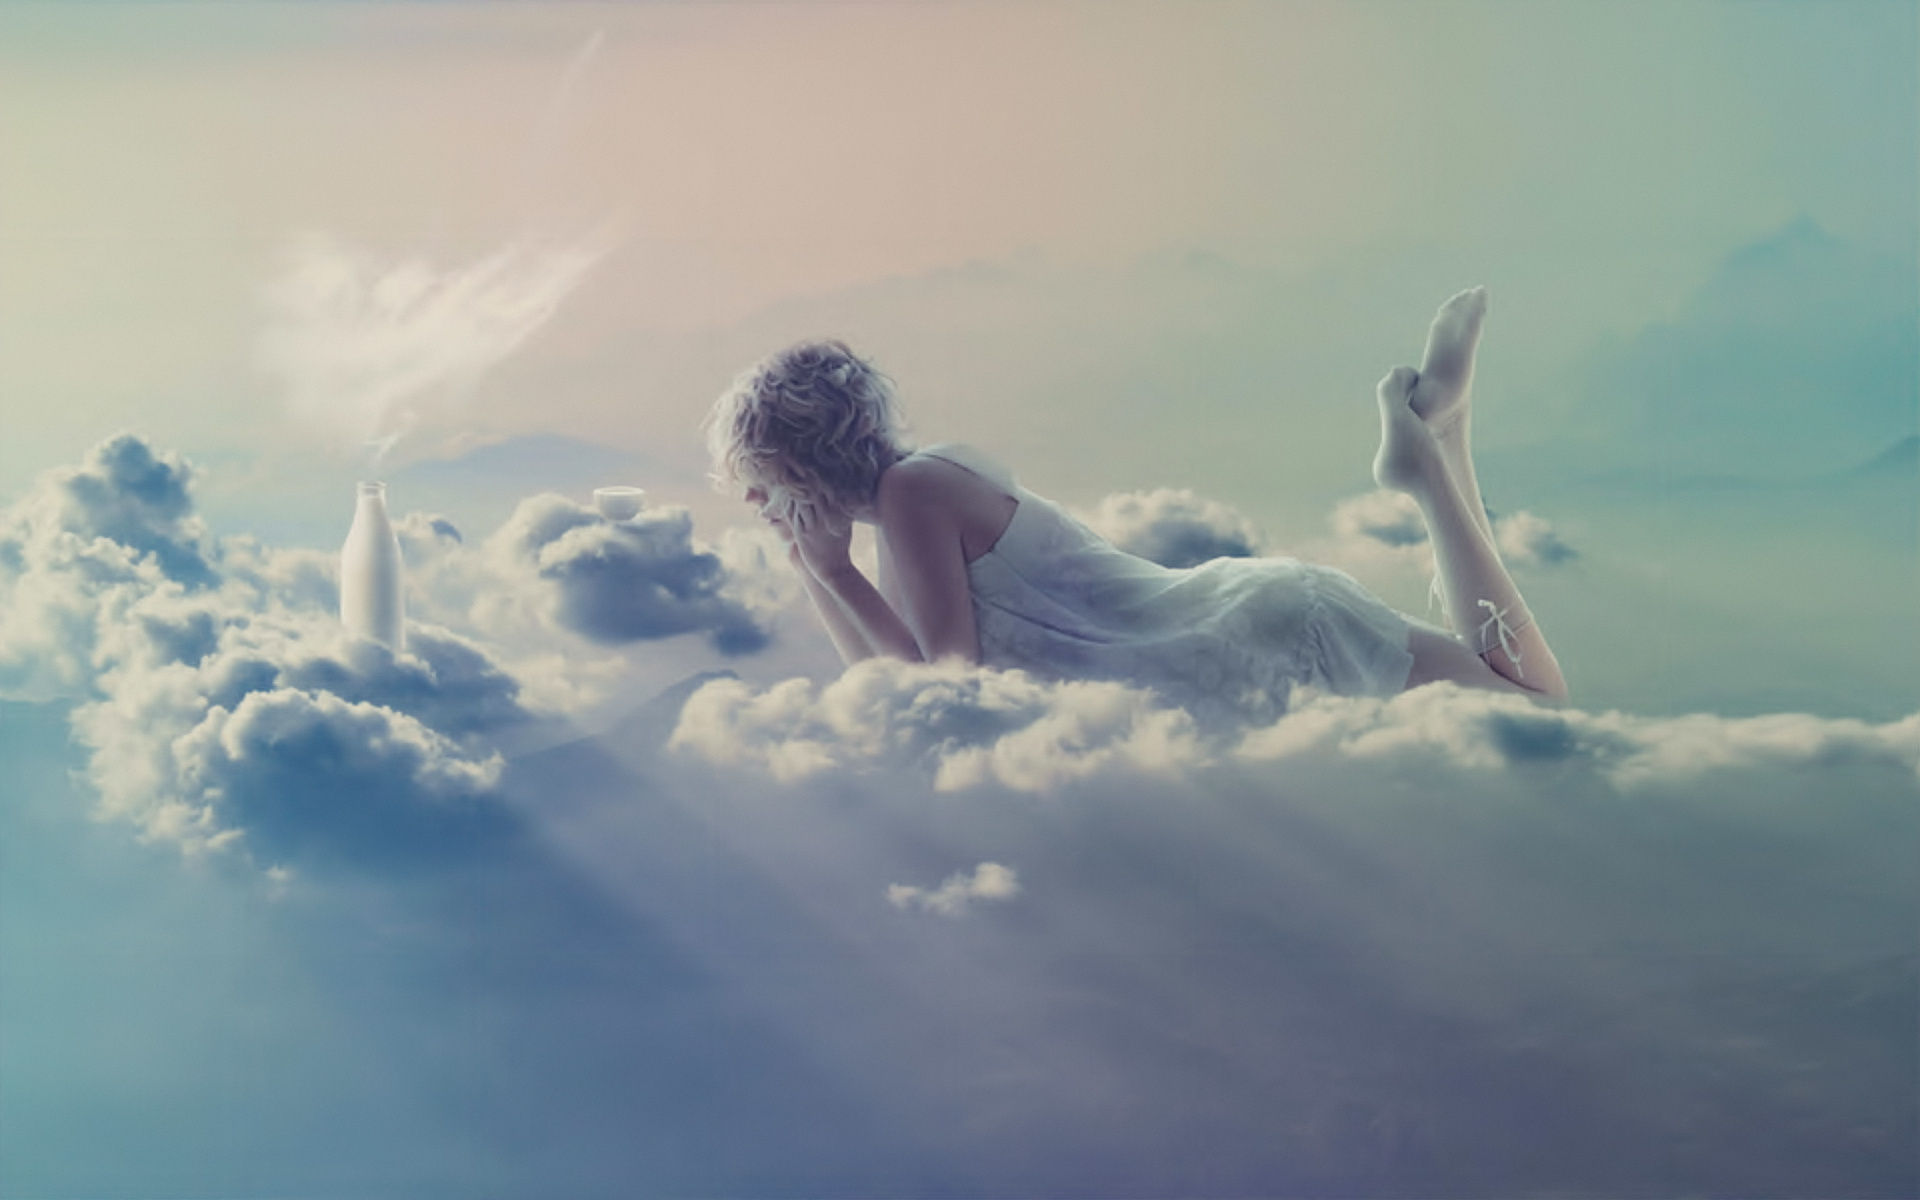 Artistic - Women  - Gothic - Cloud - Sauna - Sake Wallpaper